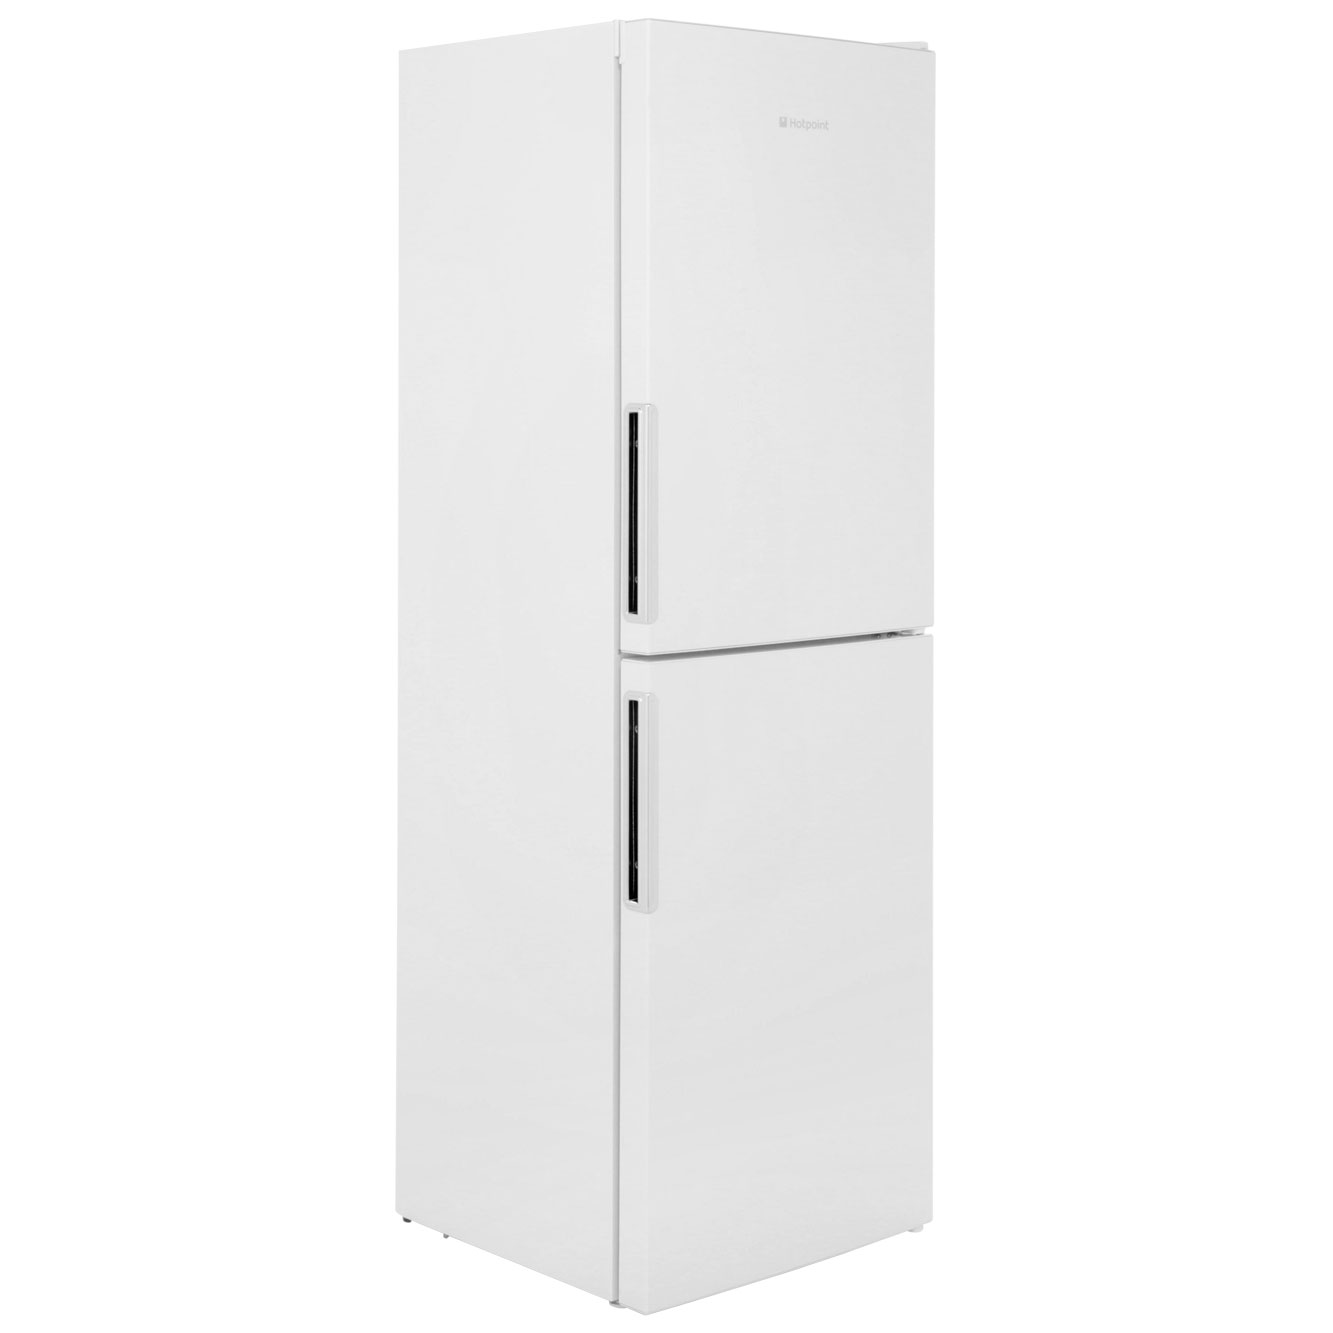 Hotpoint LAO85FF1IW Free Standing Fridge Freezer Frost Free in White